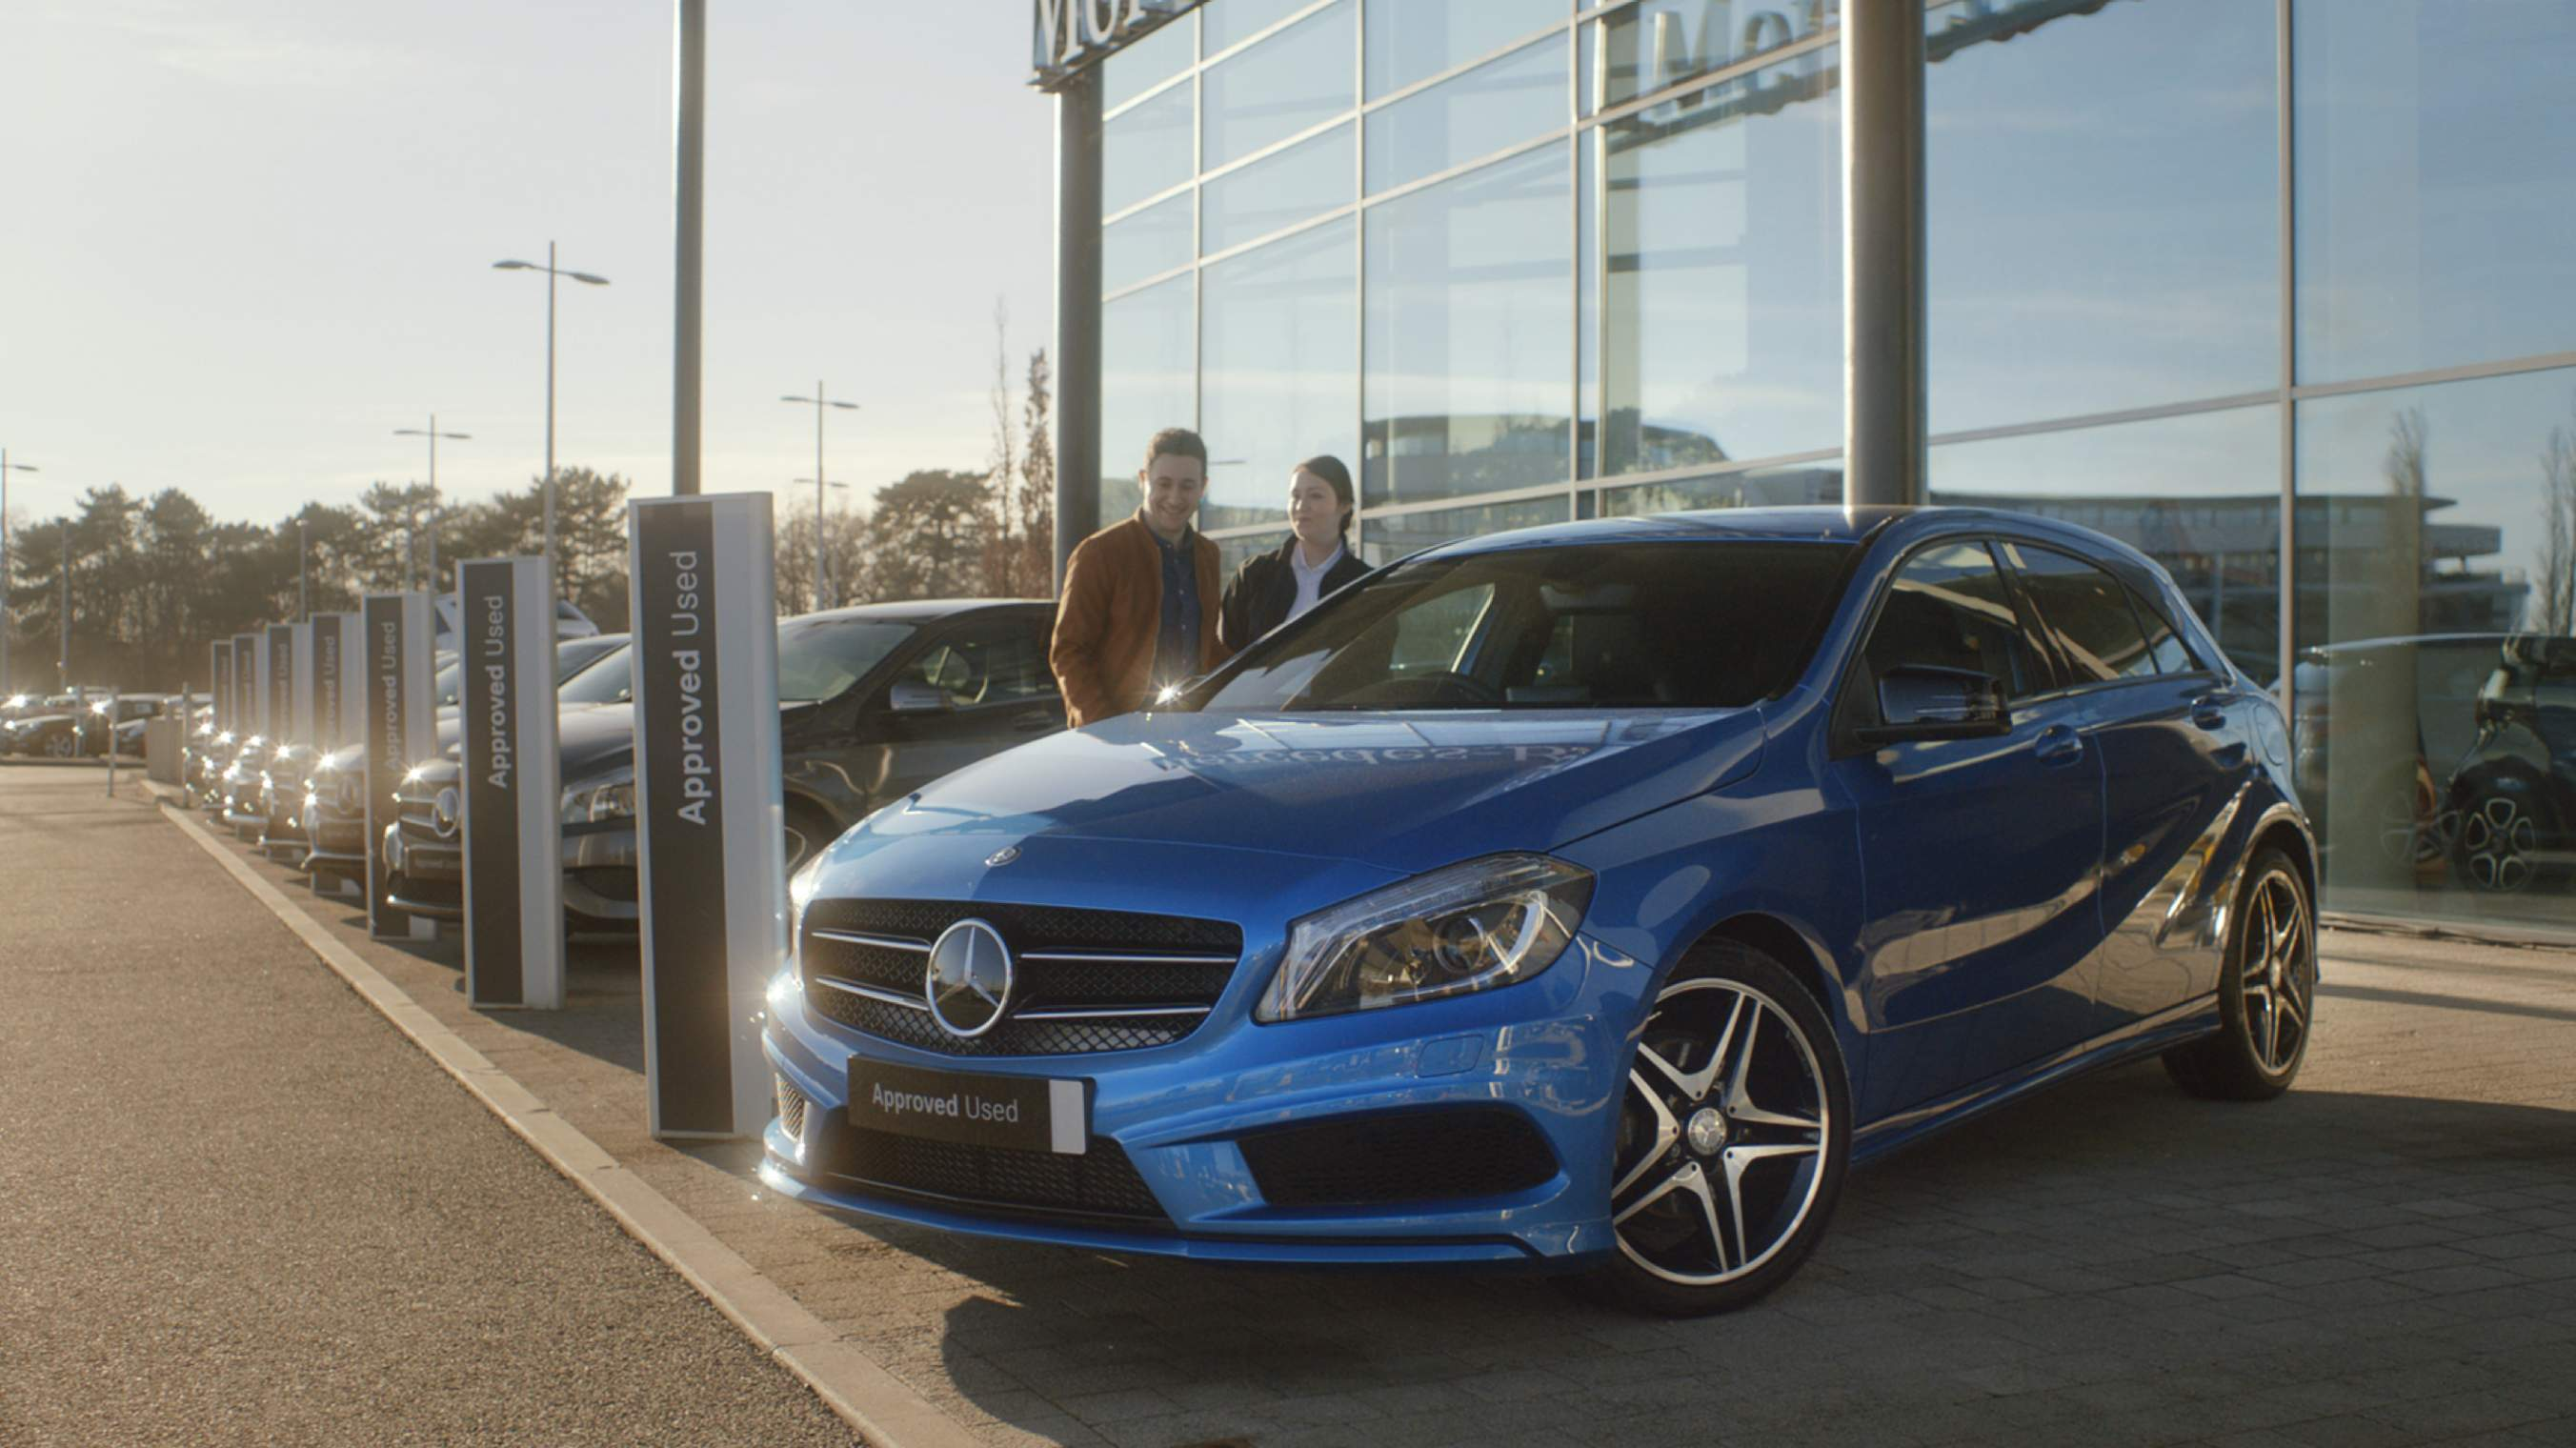 Mercedes Used Cars for Sale Near Me New Approved Used Cars Mercedes Benz Cars Uk